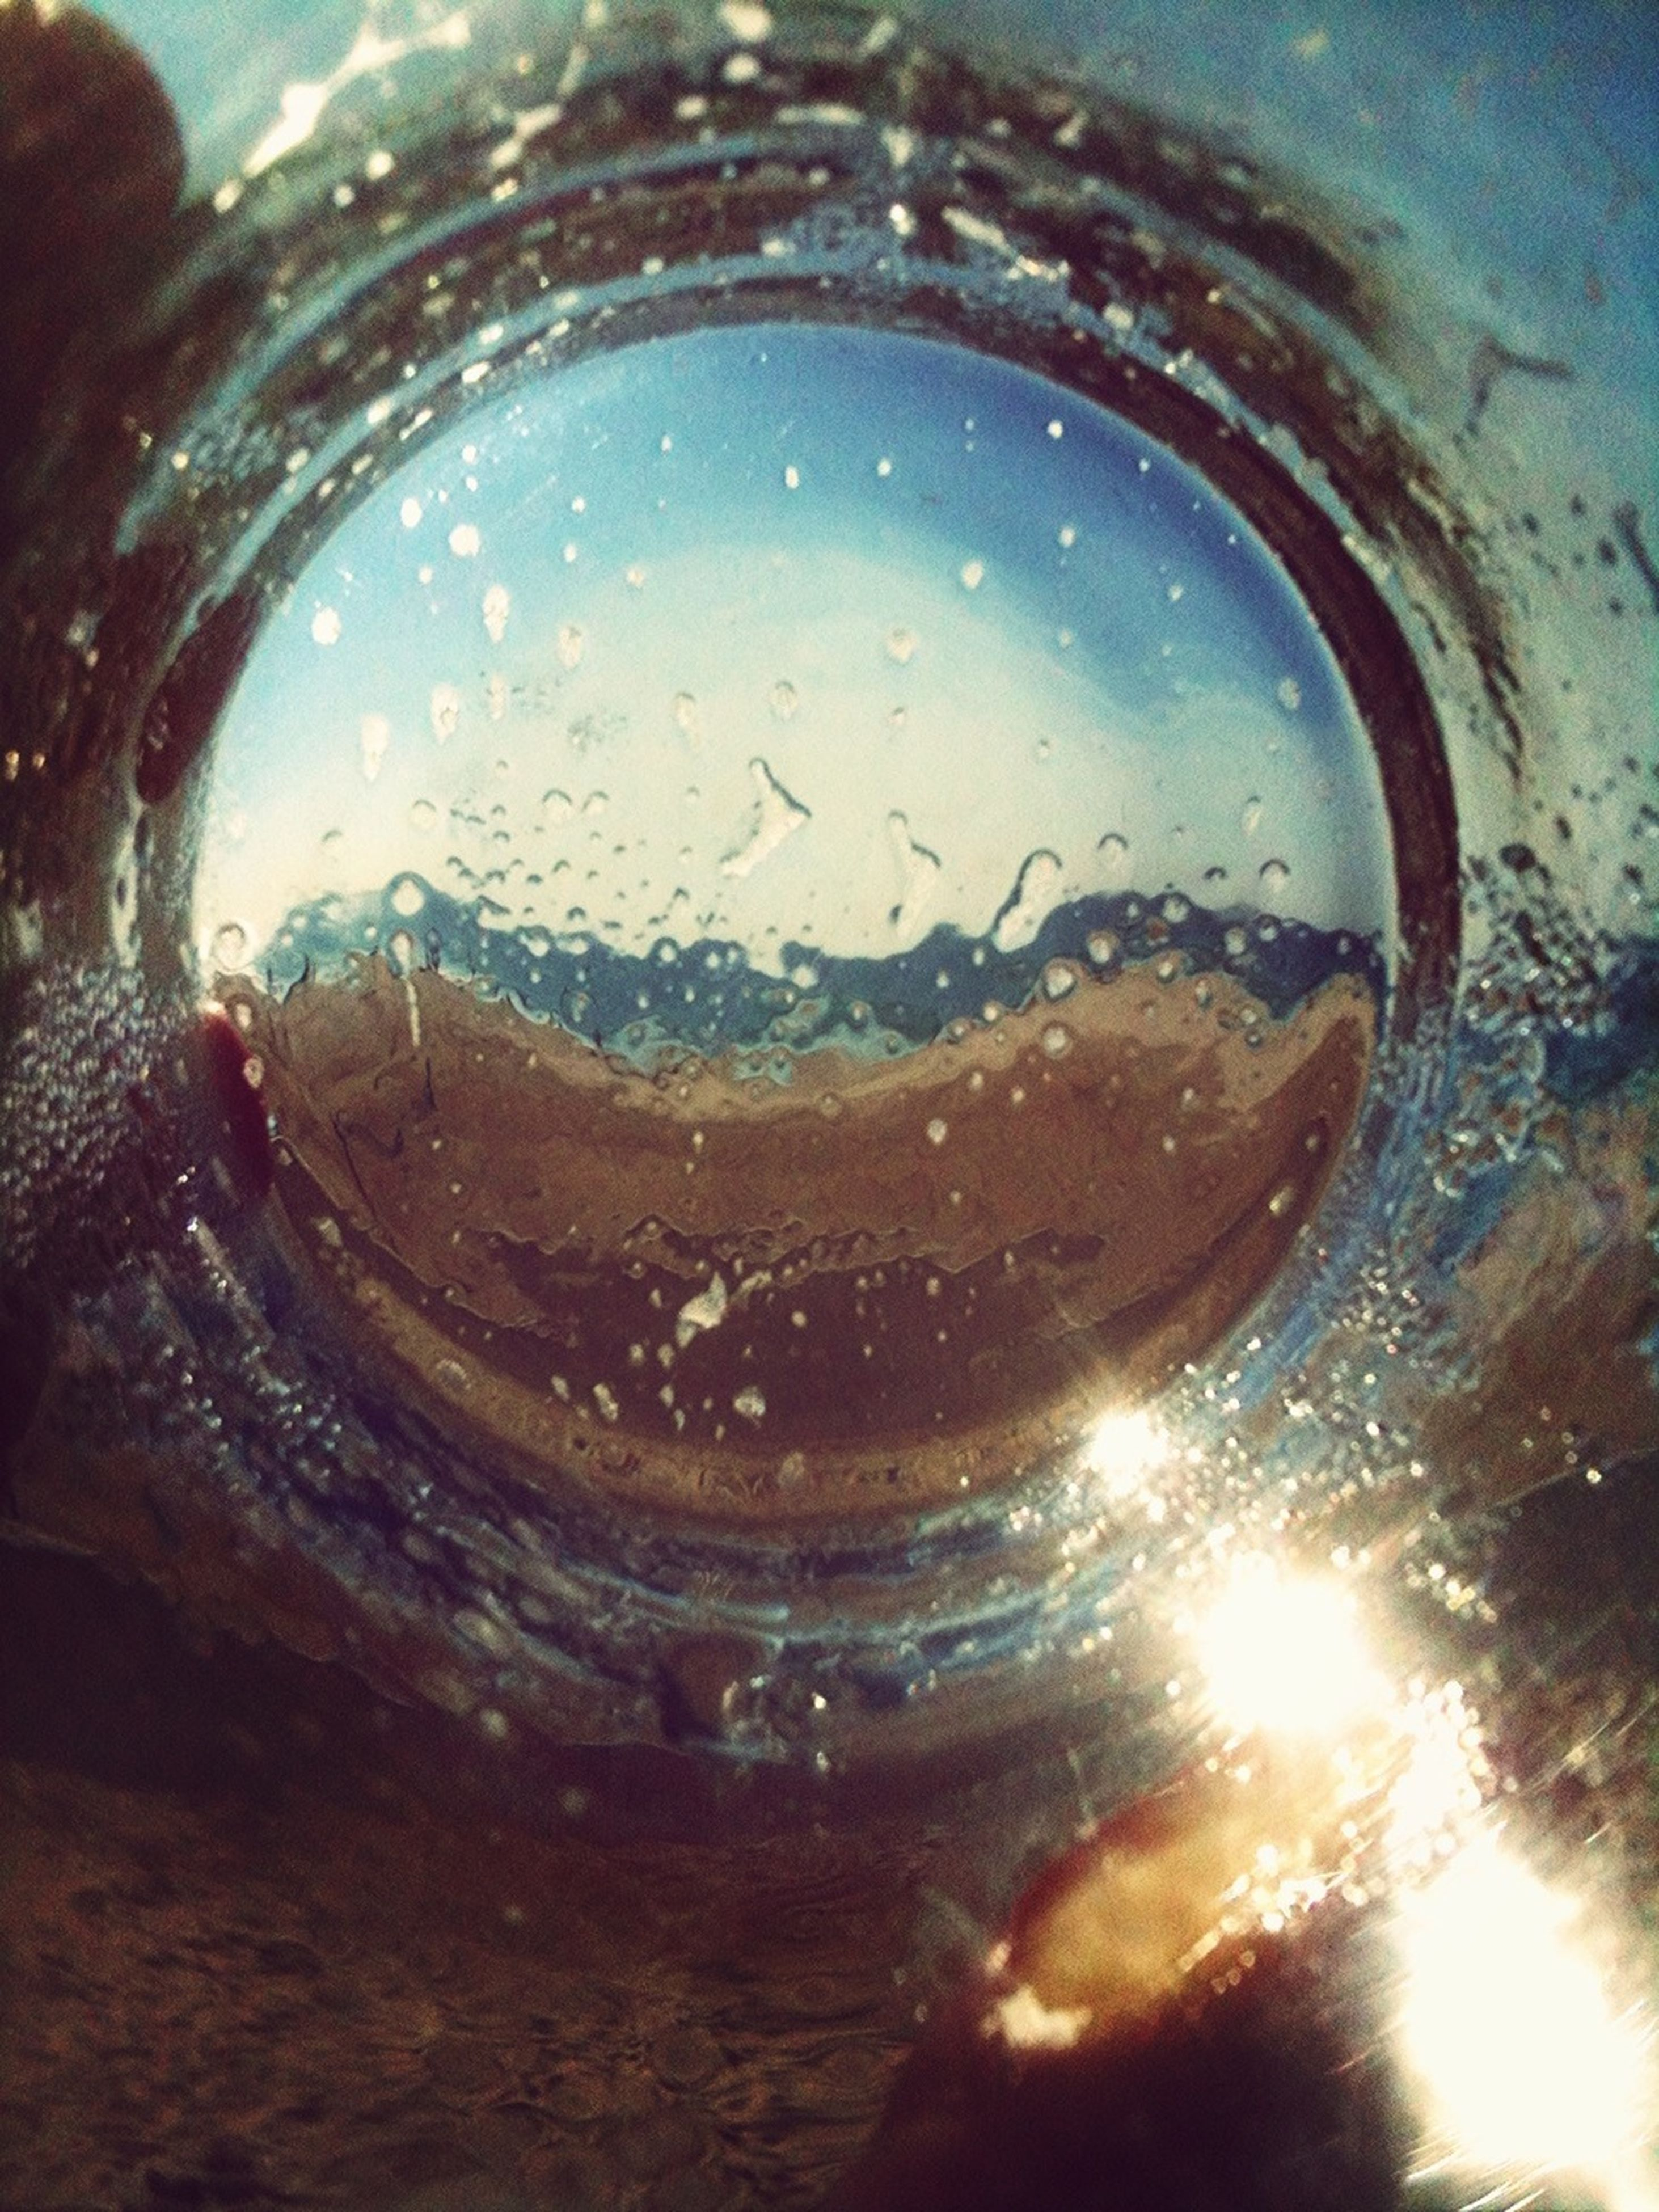 water, indoors, refreshment, close-up, transparent, drop, drink, glass - material, bubble, reflection, freshness, wet, full frame, drinking glass, glass, circle, backgrounds, purity, no people, liquid